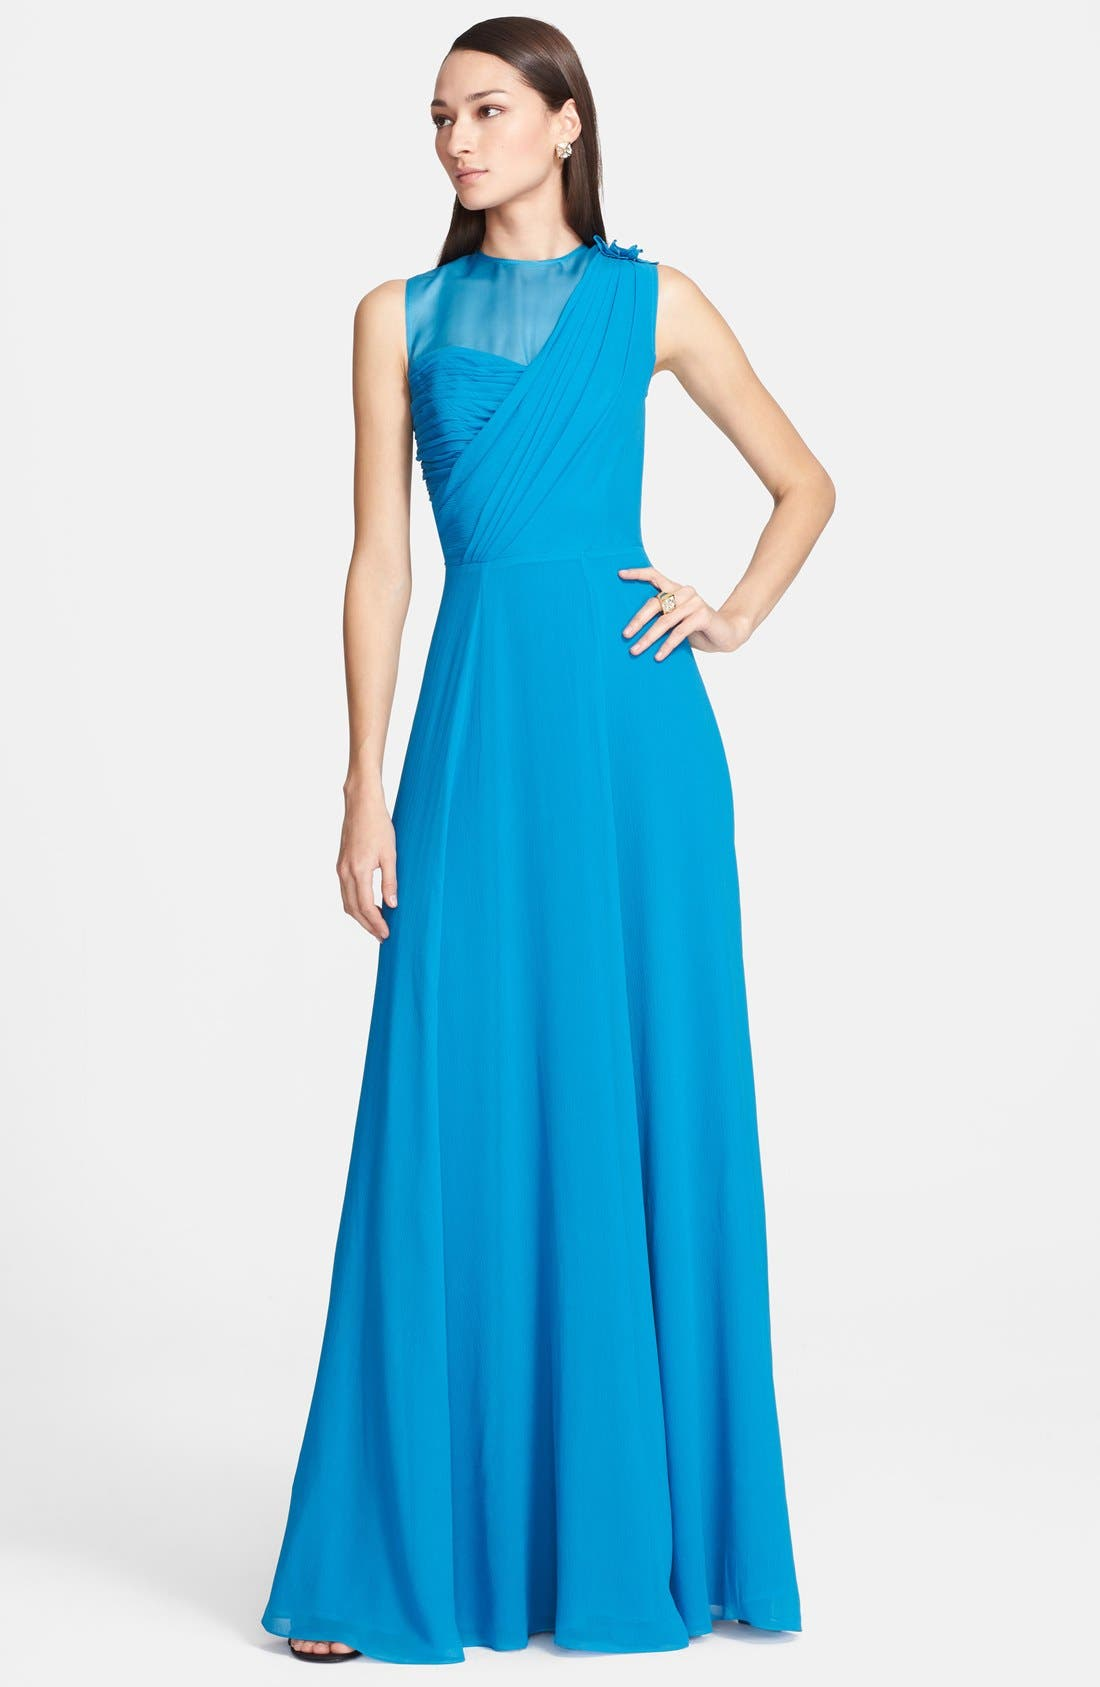 Main Image - St. John Collection Organza Inset Drape Bodice Silk Georgette Gown